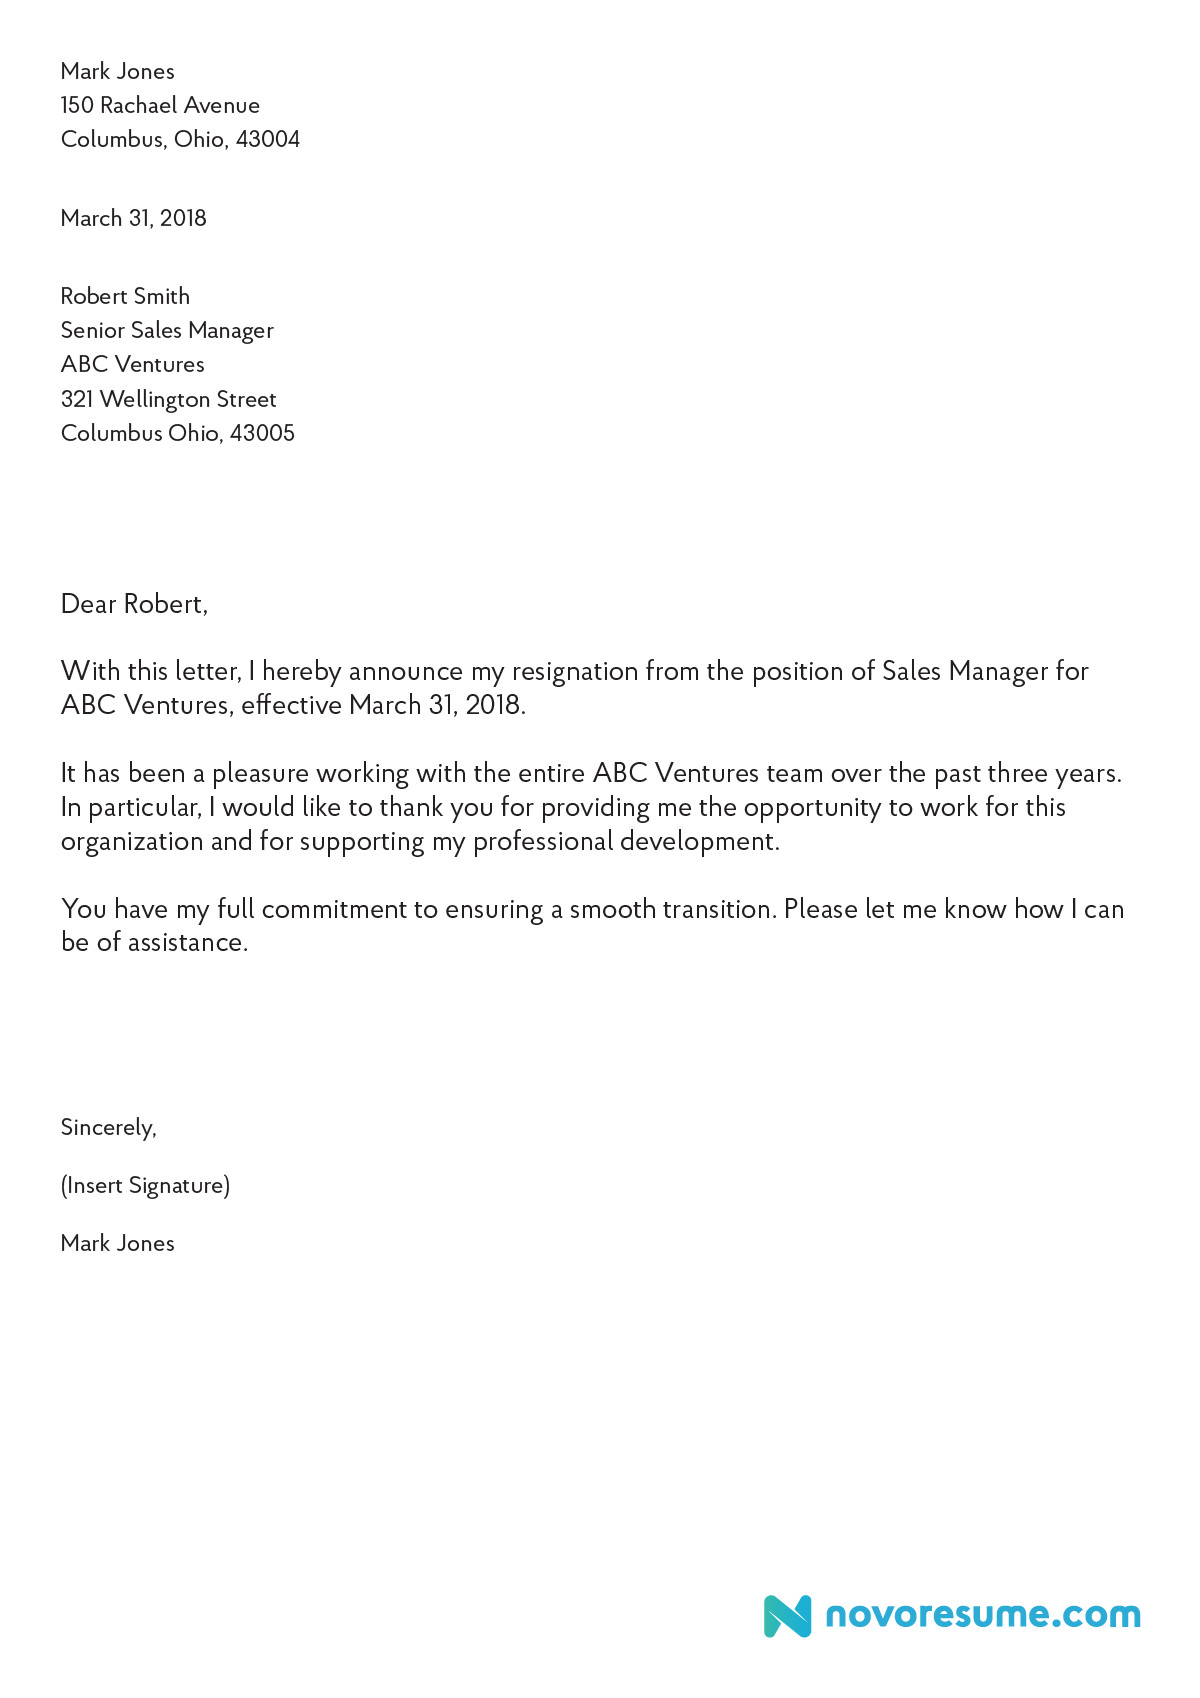 Letters Of Resignation Template How to Write A Letter Of Resignation – 2019 Extensive Guide